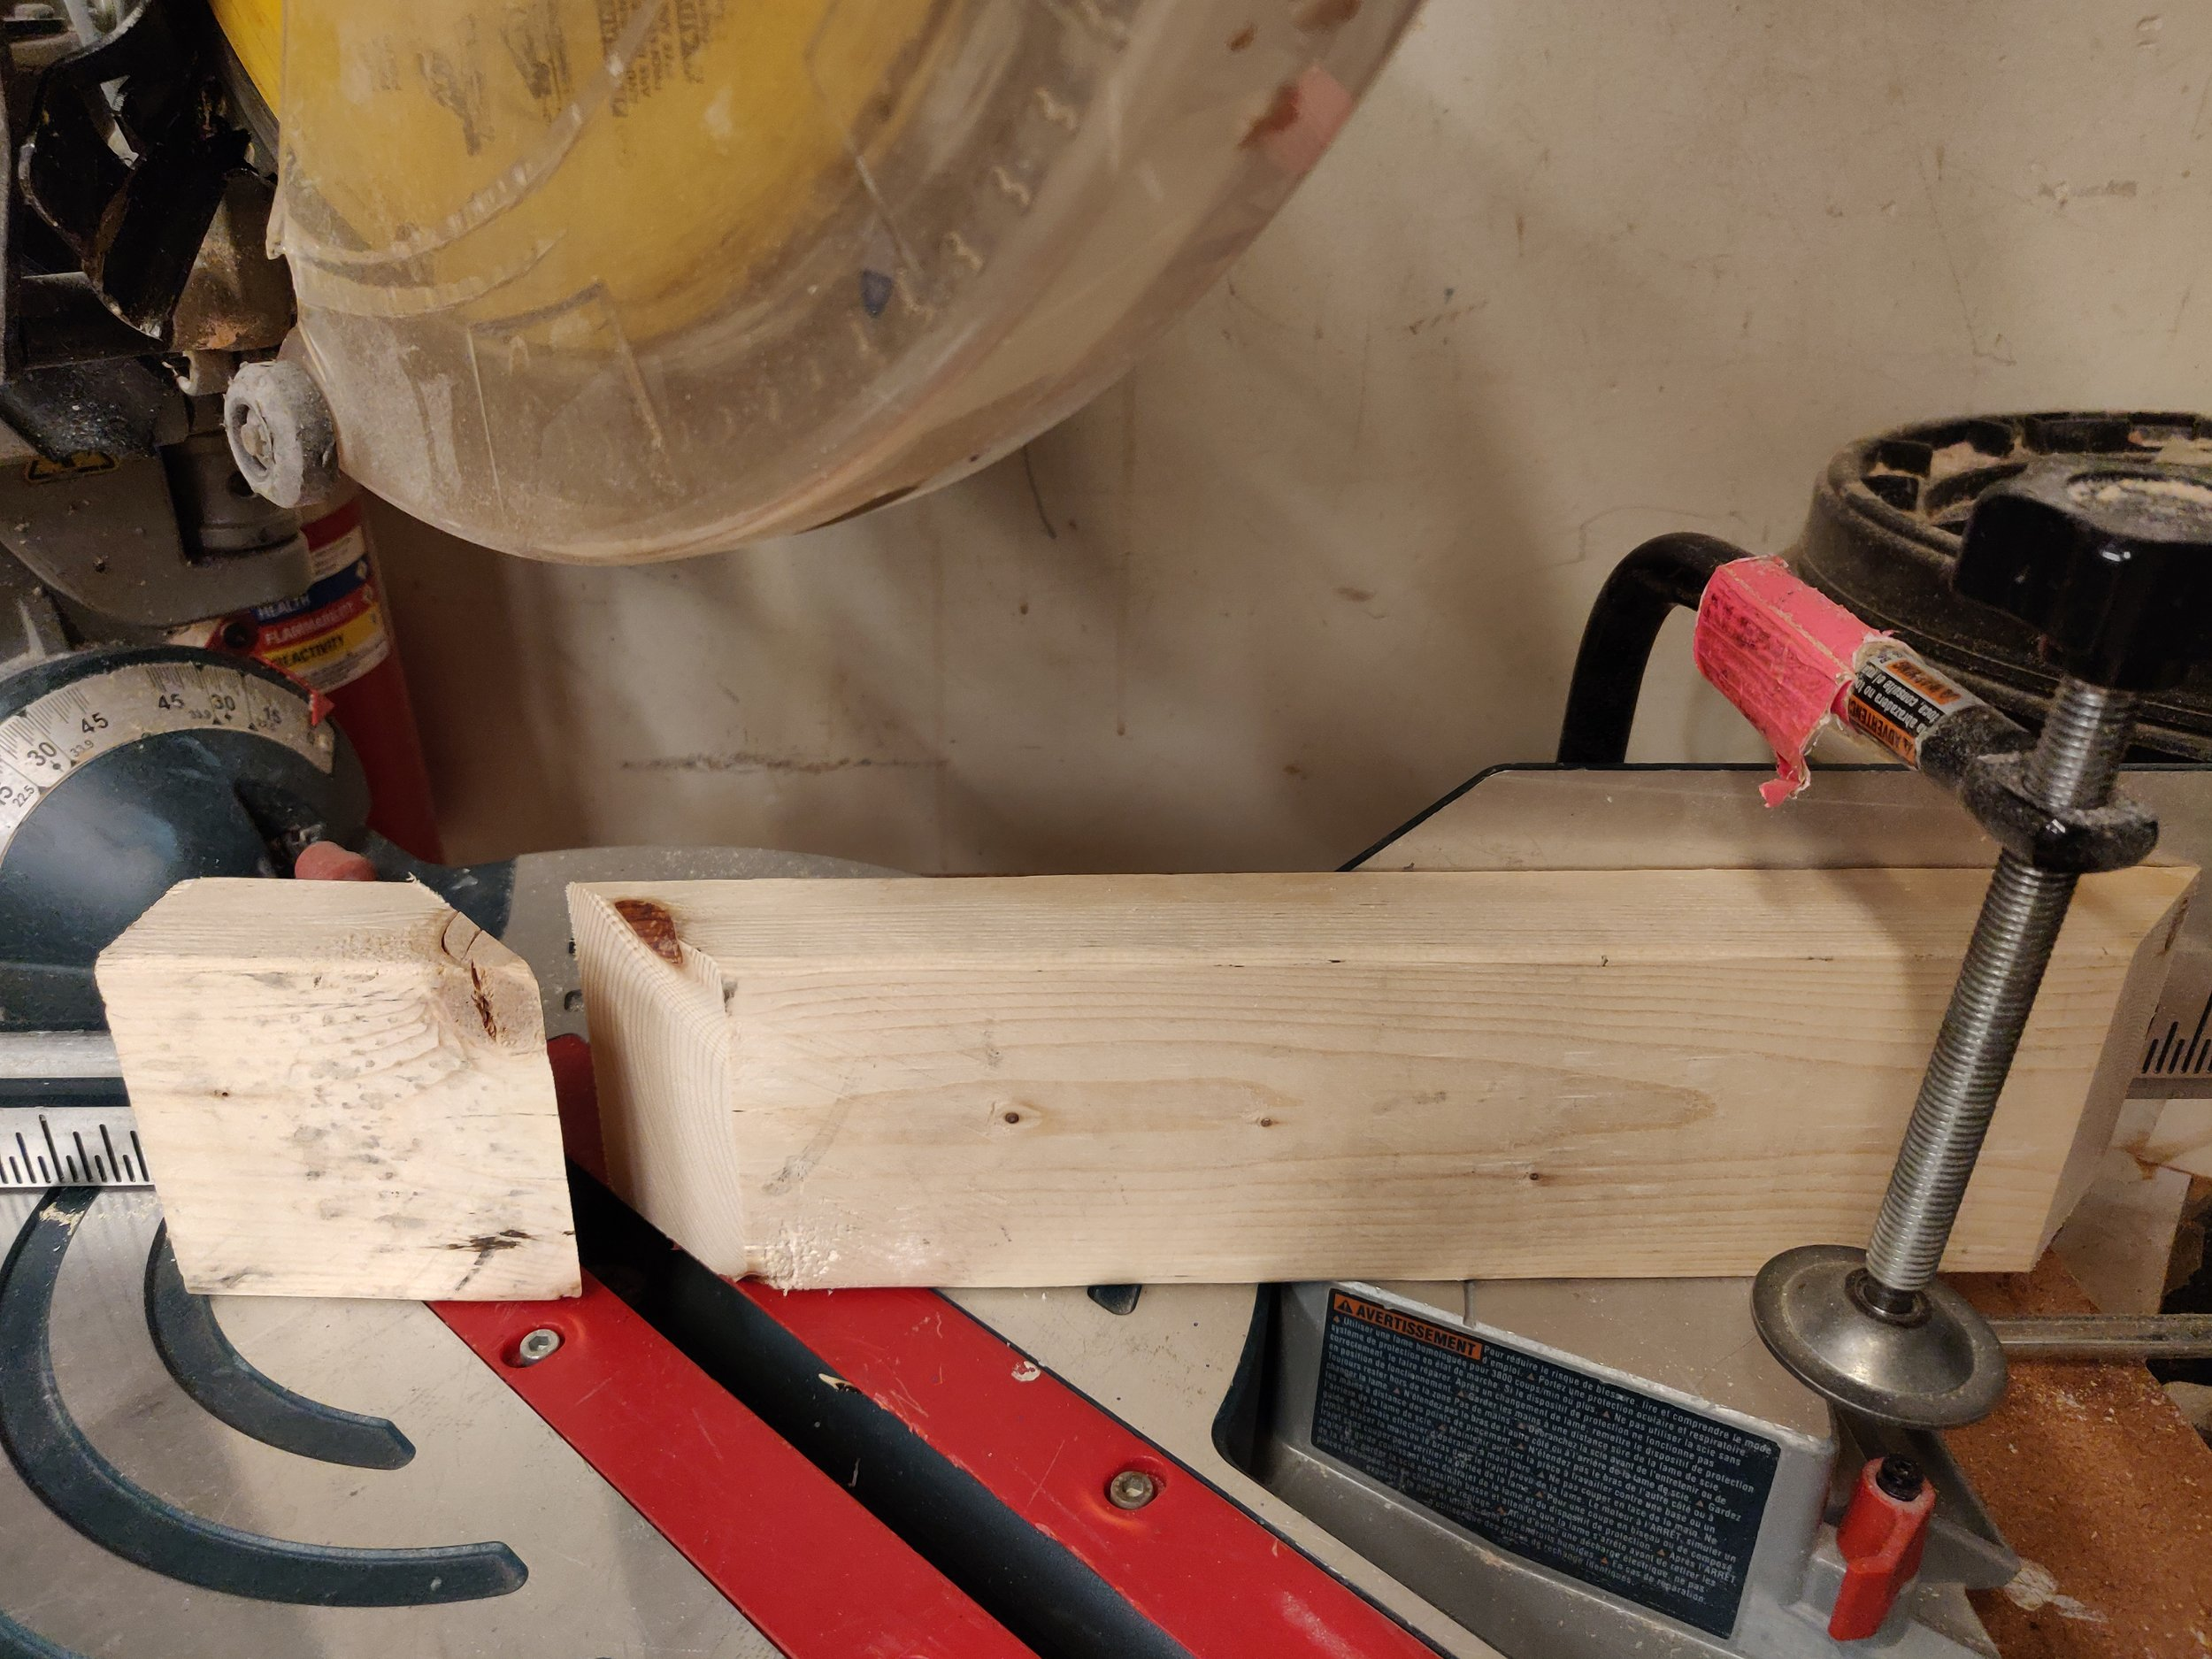 Cutting the wooden frame